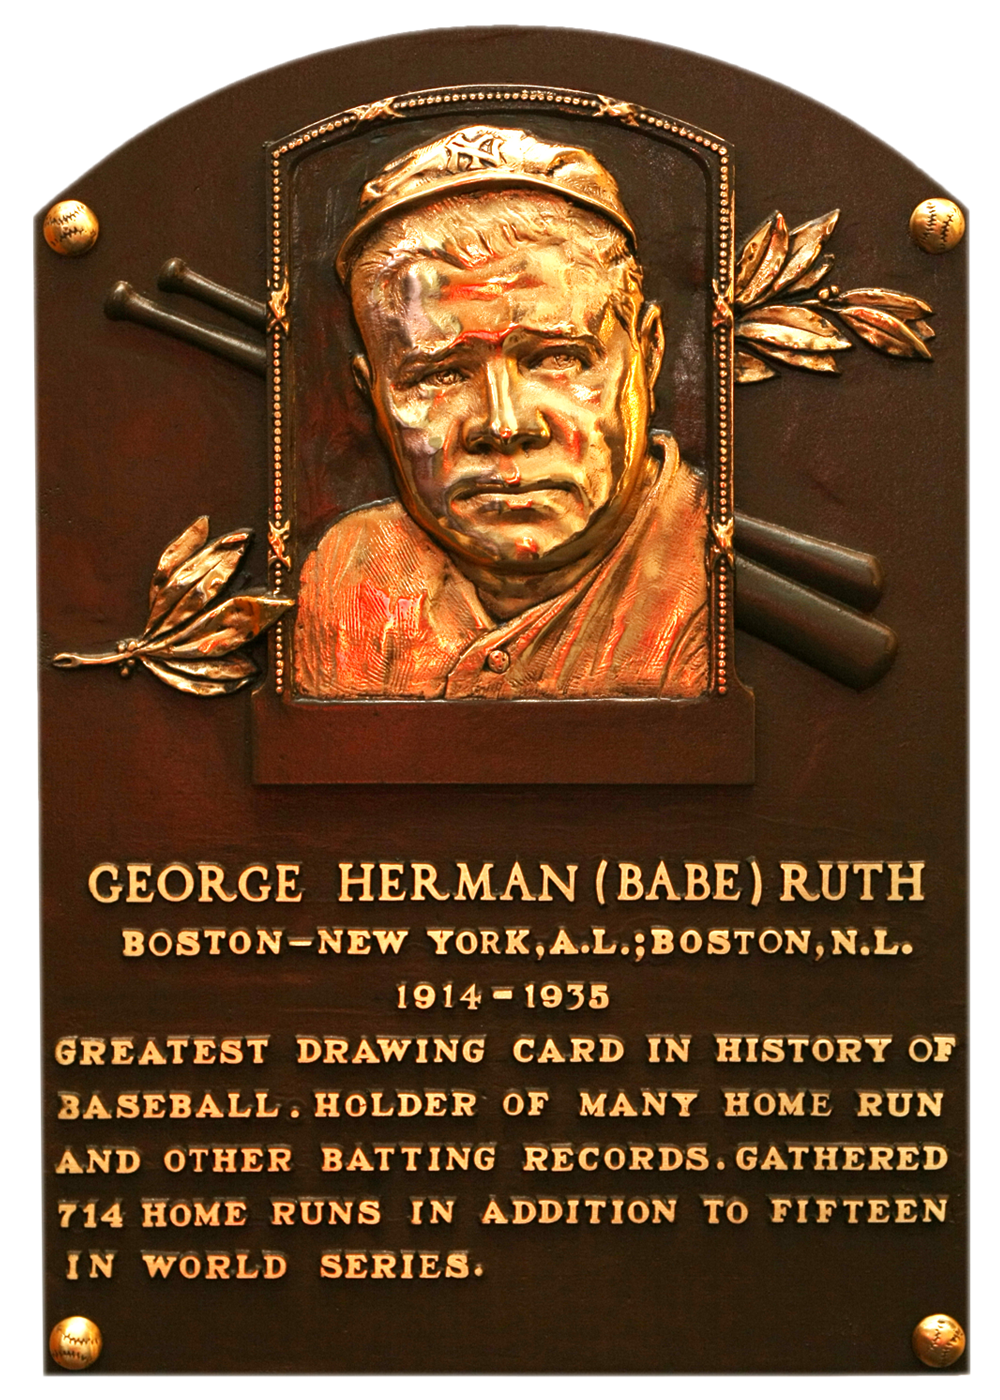 ruth babe baseball hall of fame